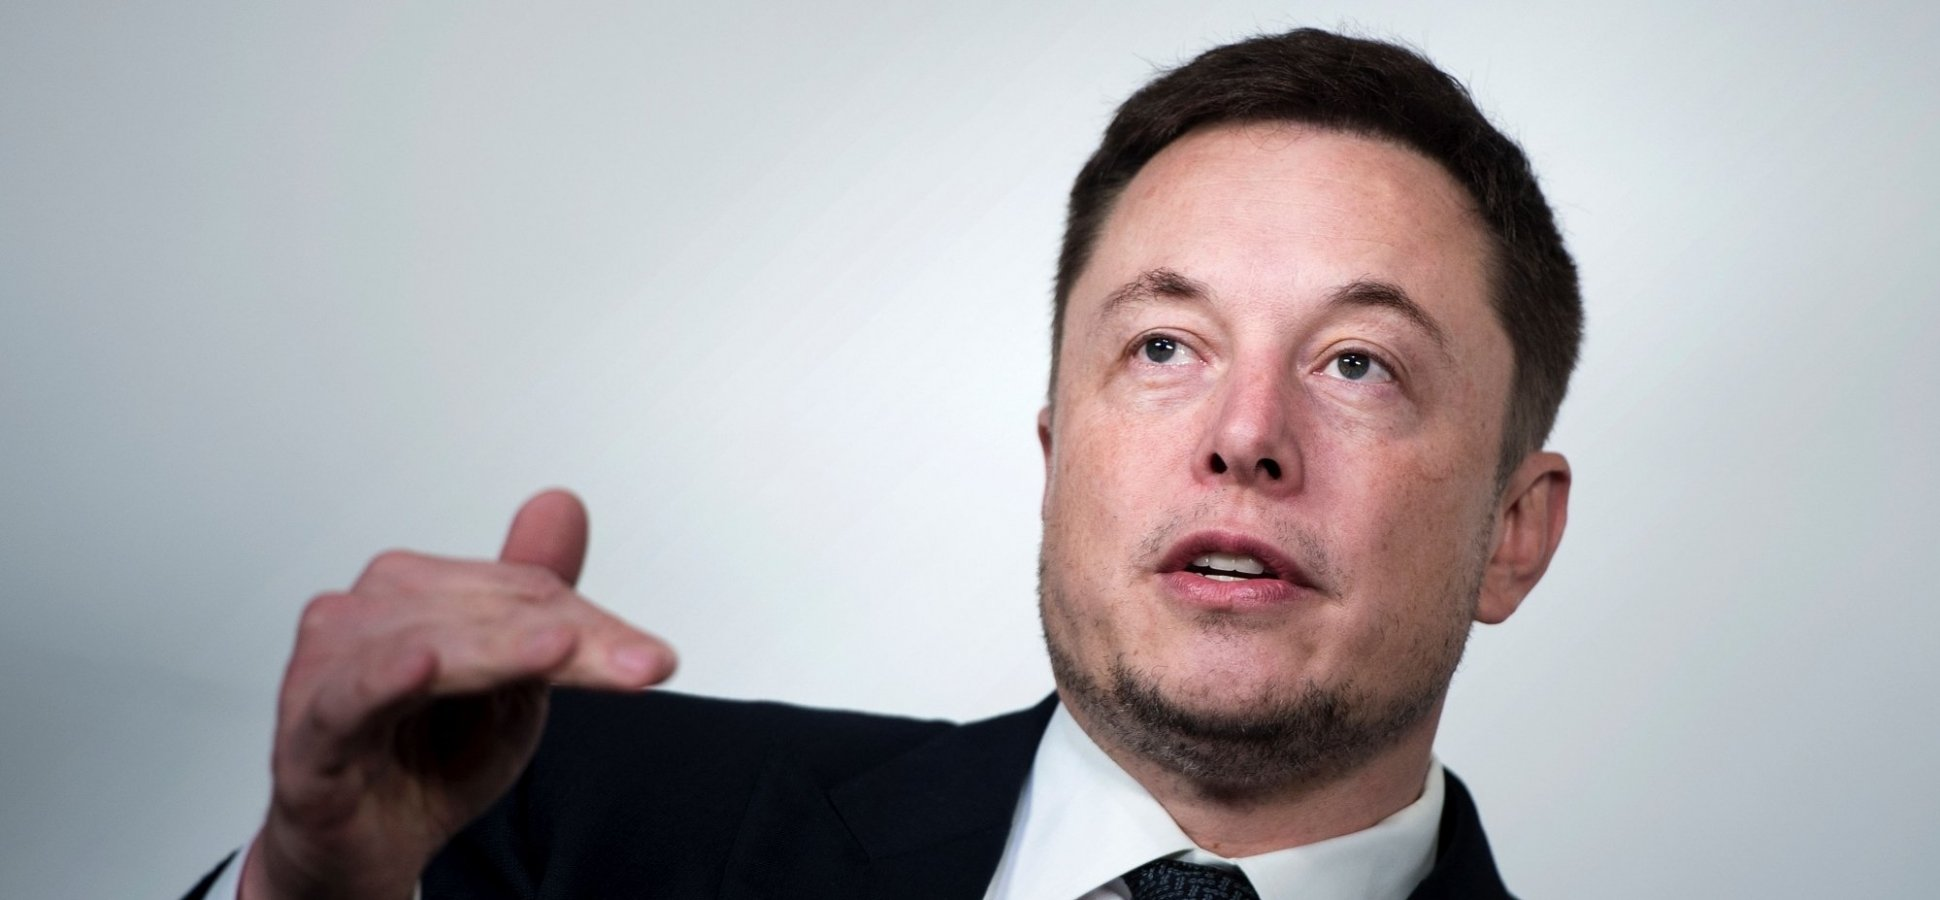 The 5 Things Elon Musk Does Every Day to Make Himself Productive